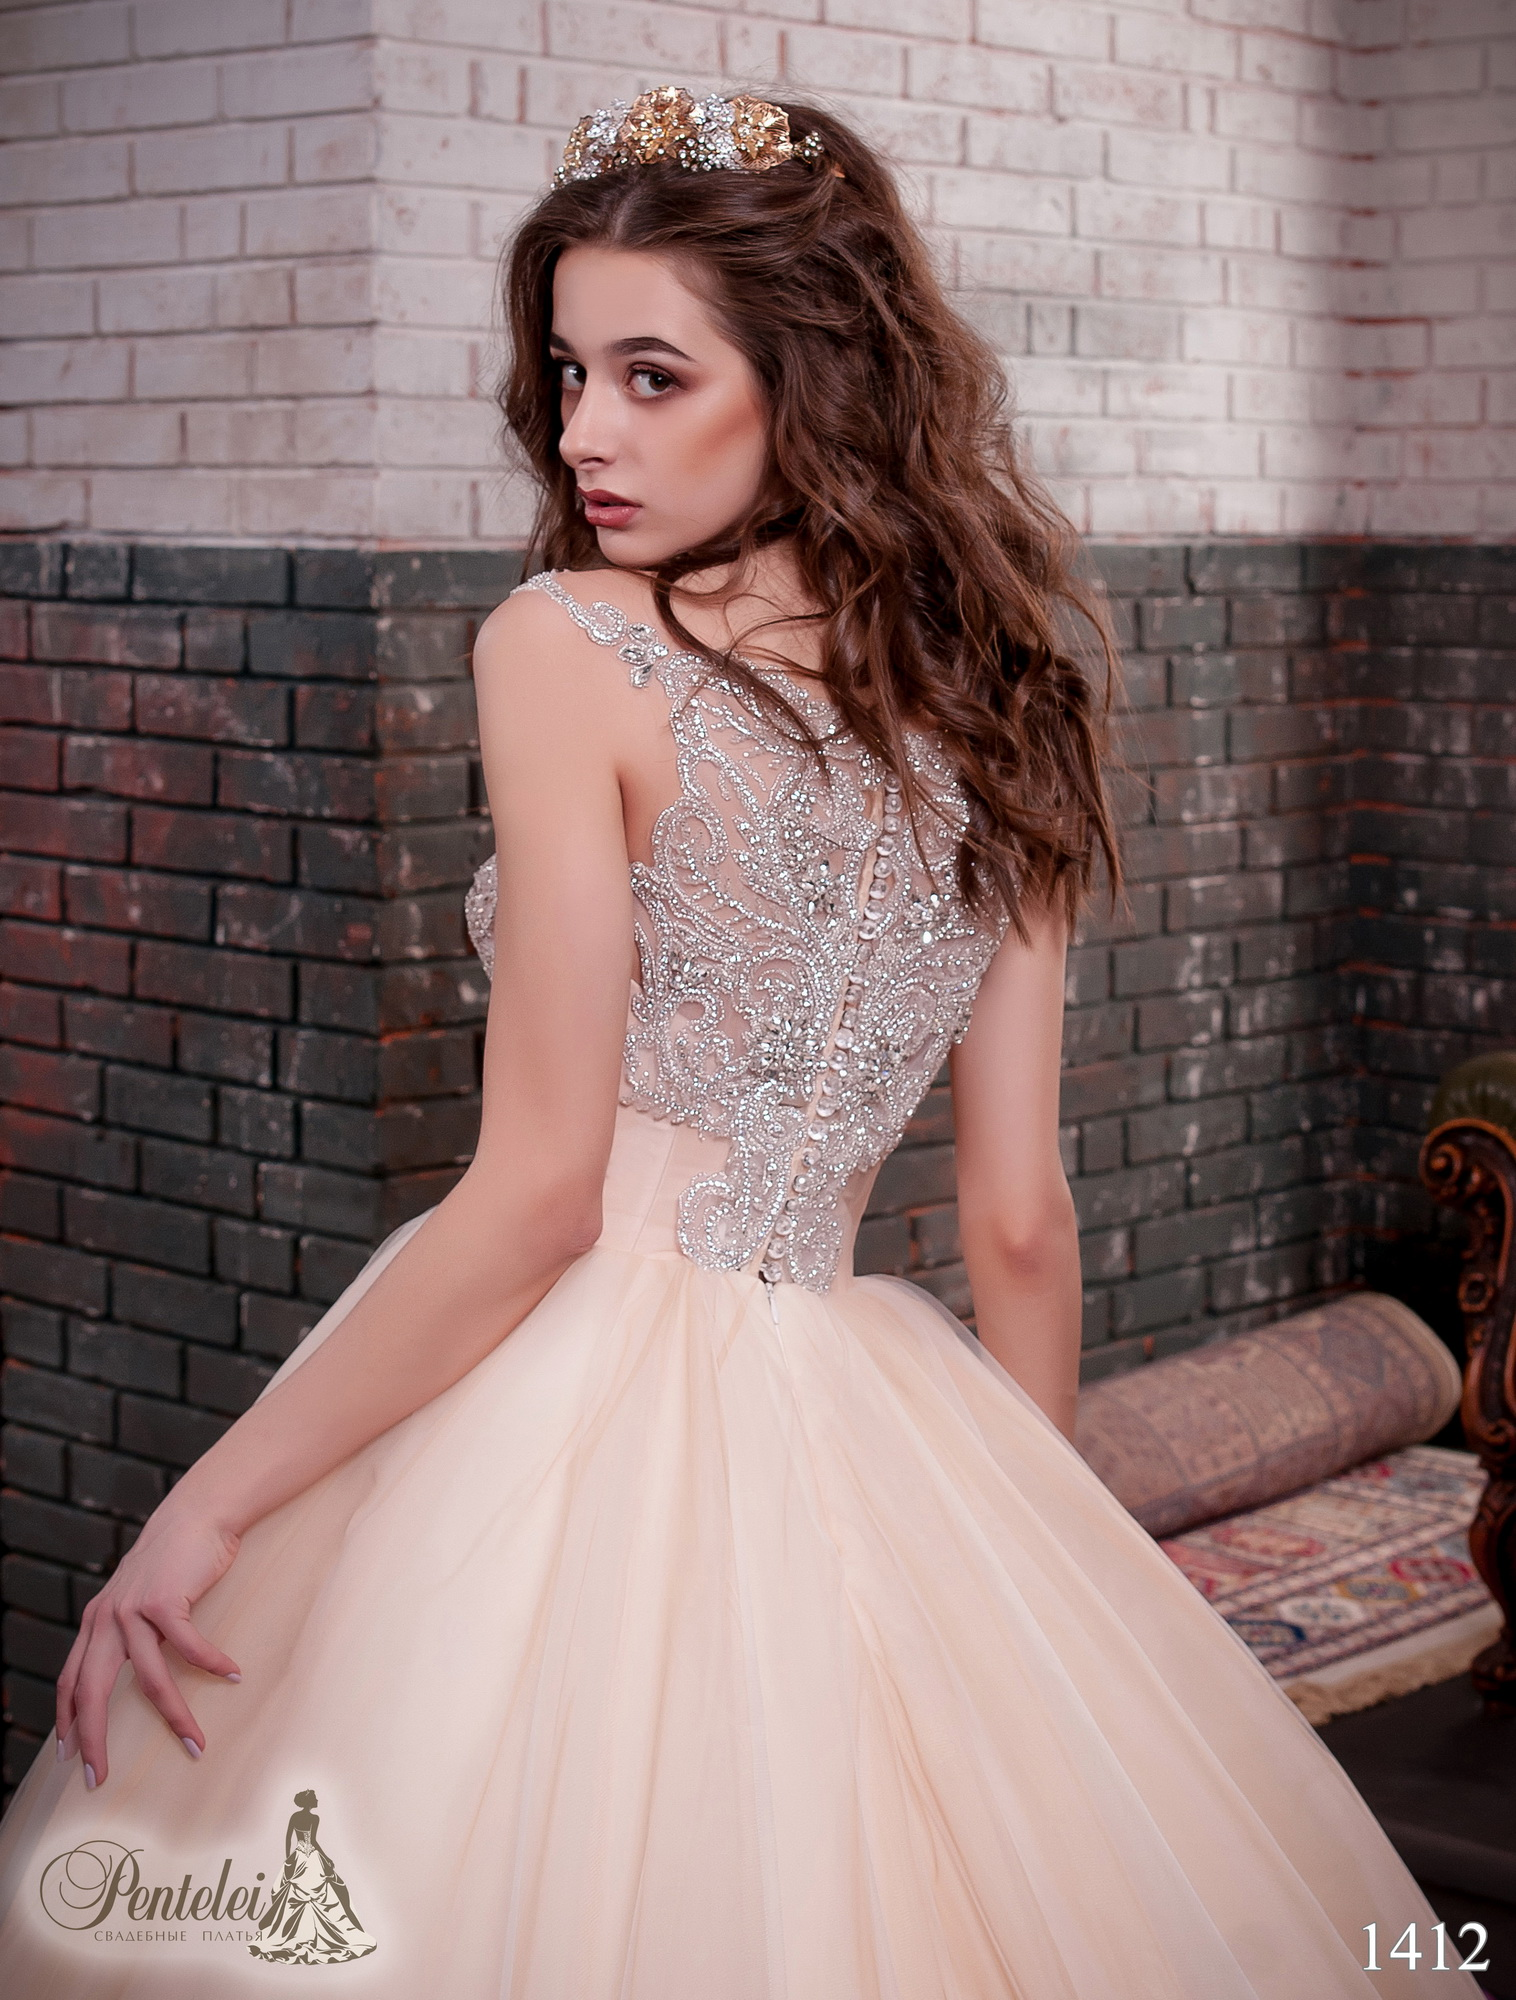 1412 | Buy wedding dresses wholesale from Pentelei